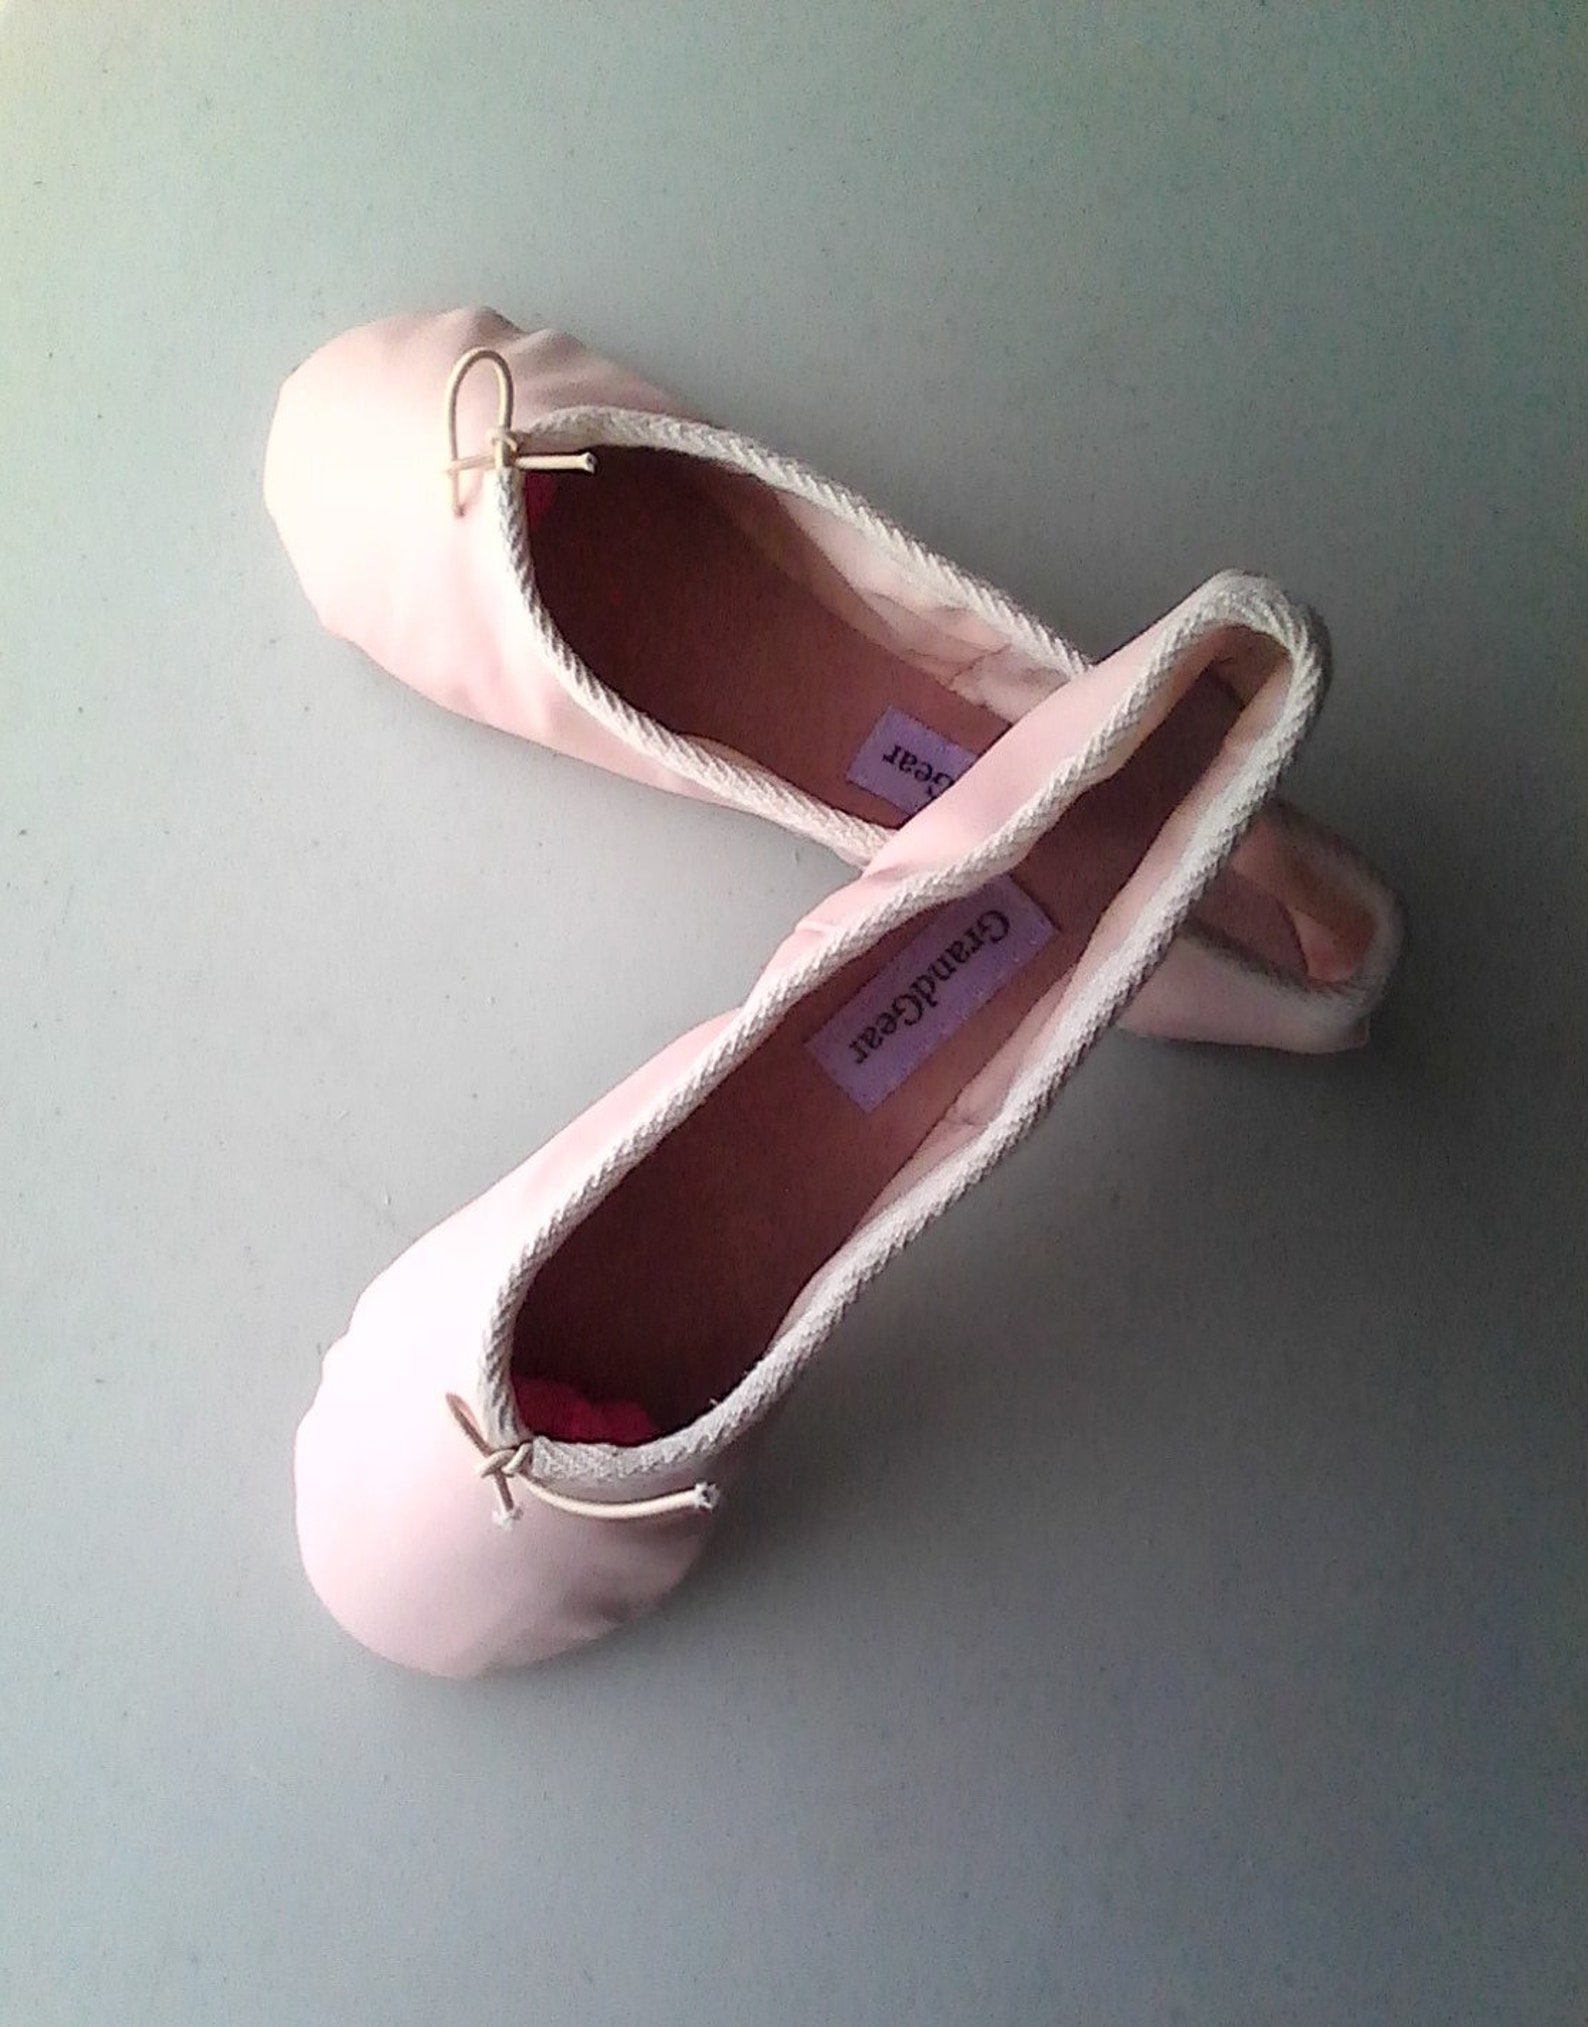 ballet pink leather ballet slippers - adult/women's sizes - full sole or split sole